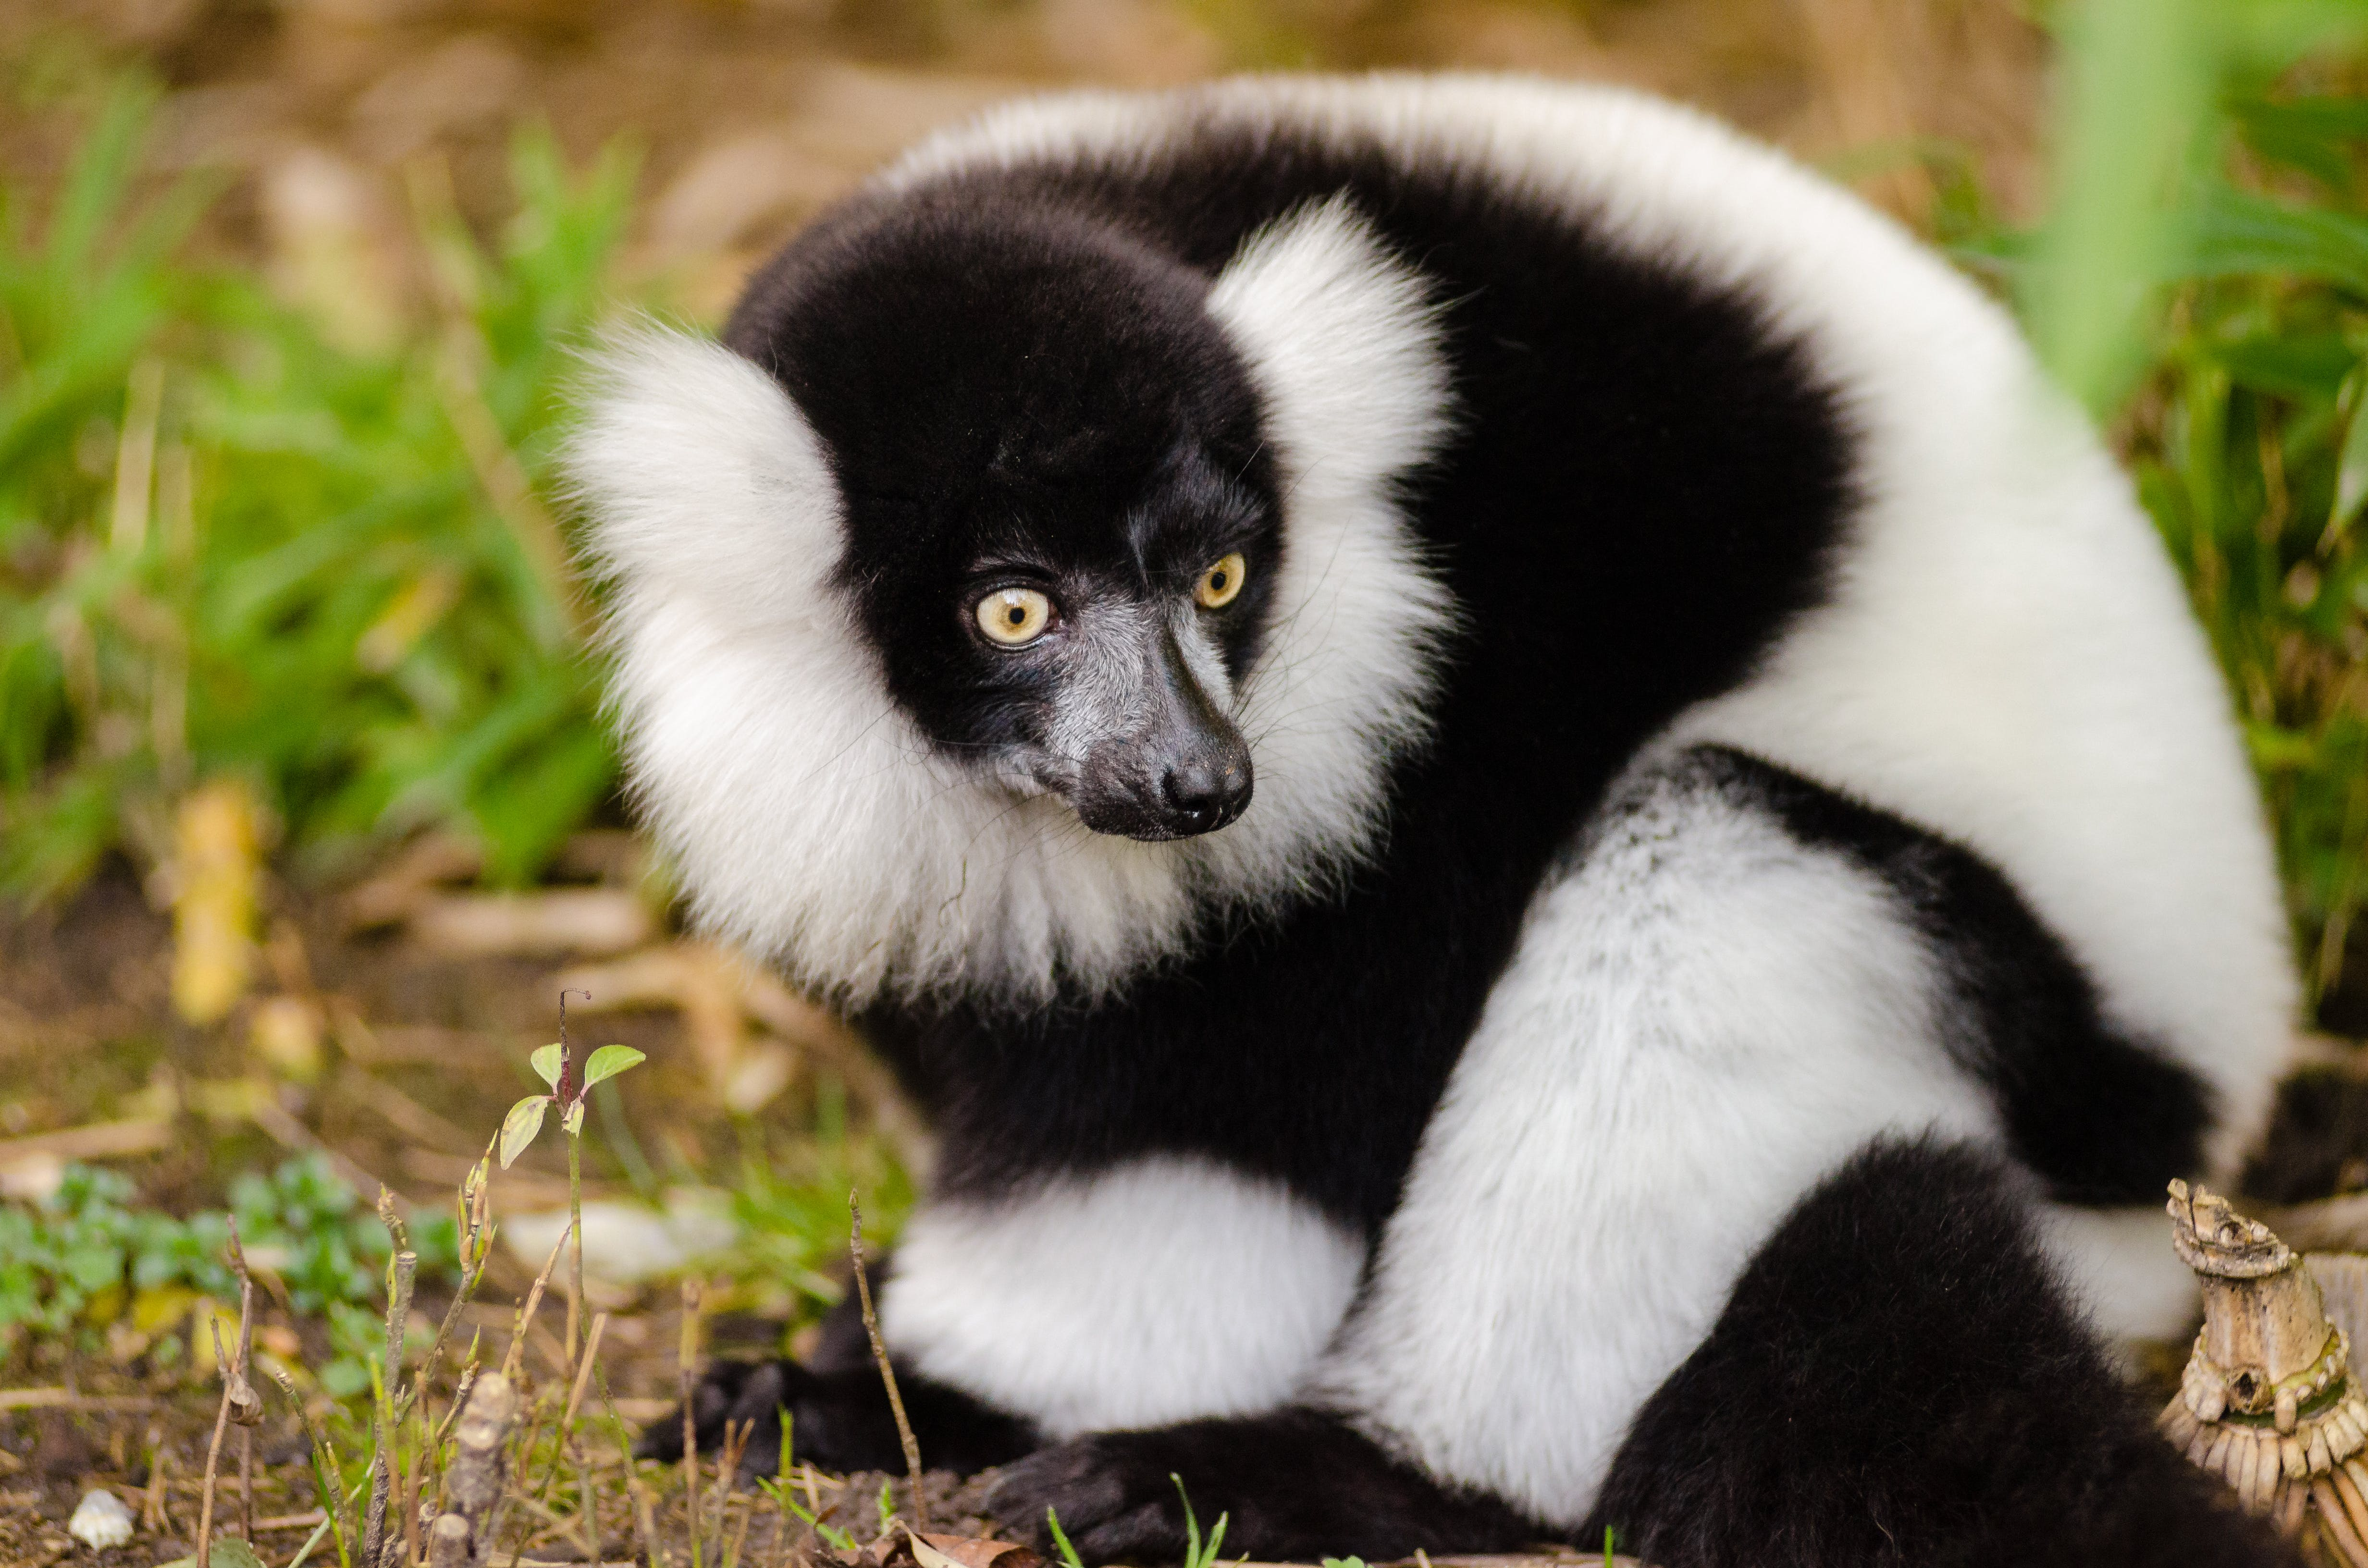 Close Up Photography of Black and White Lemur